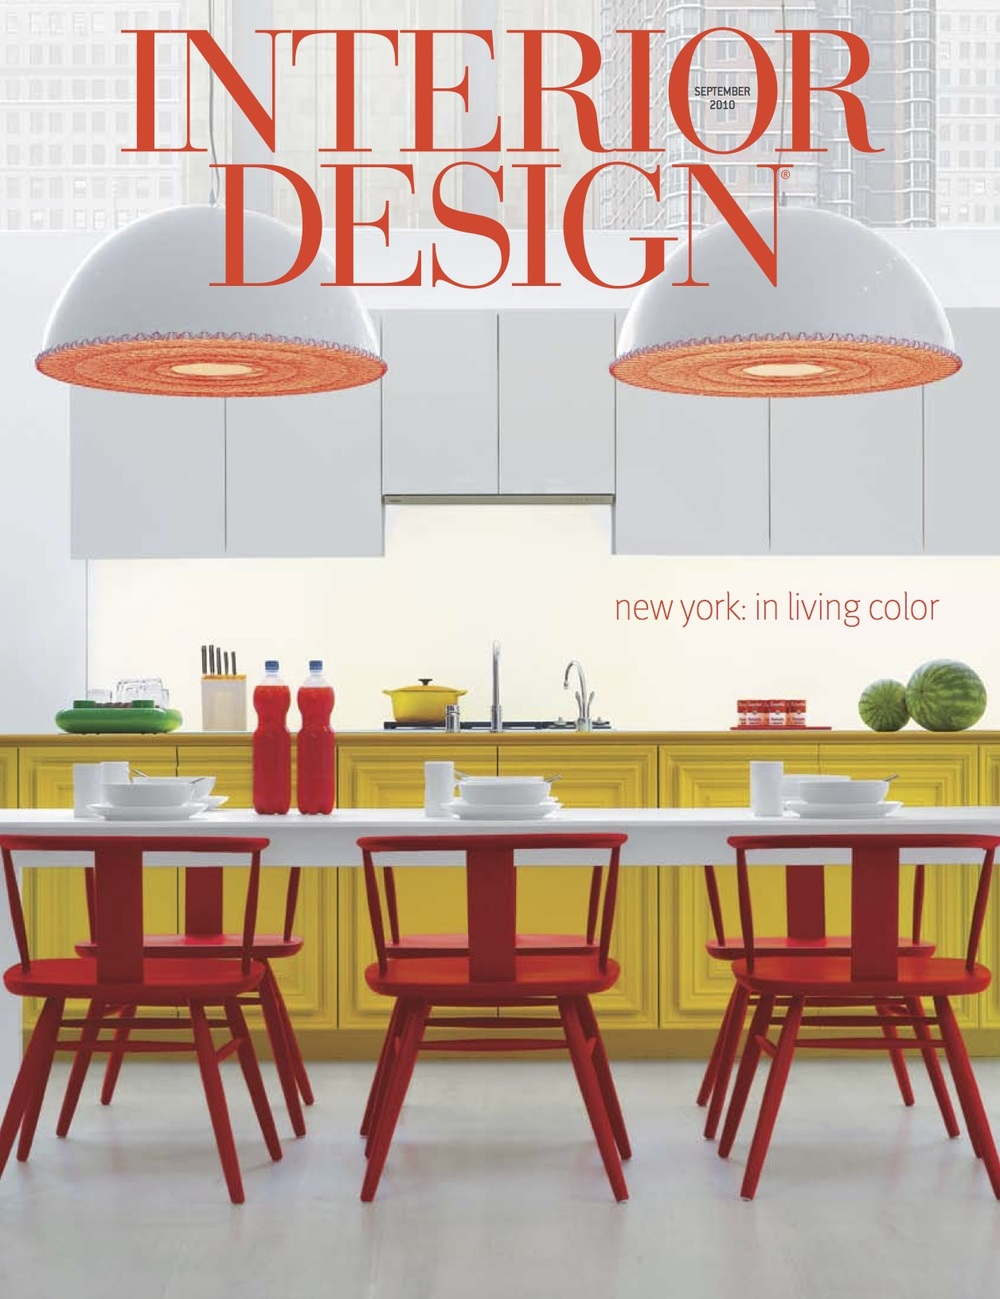 Interior Design September Alan Tanksley Inc